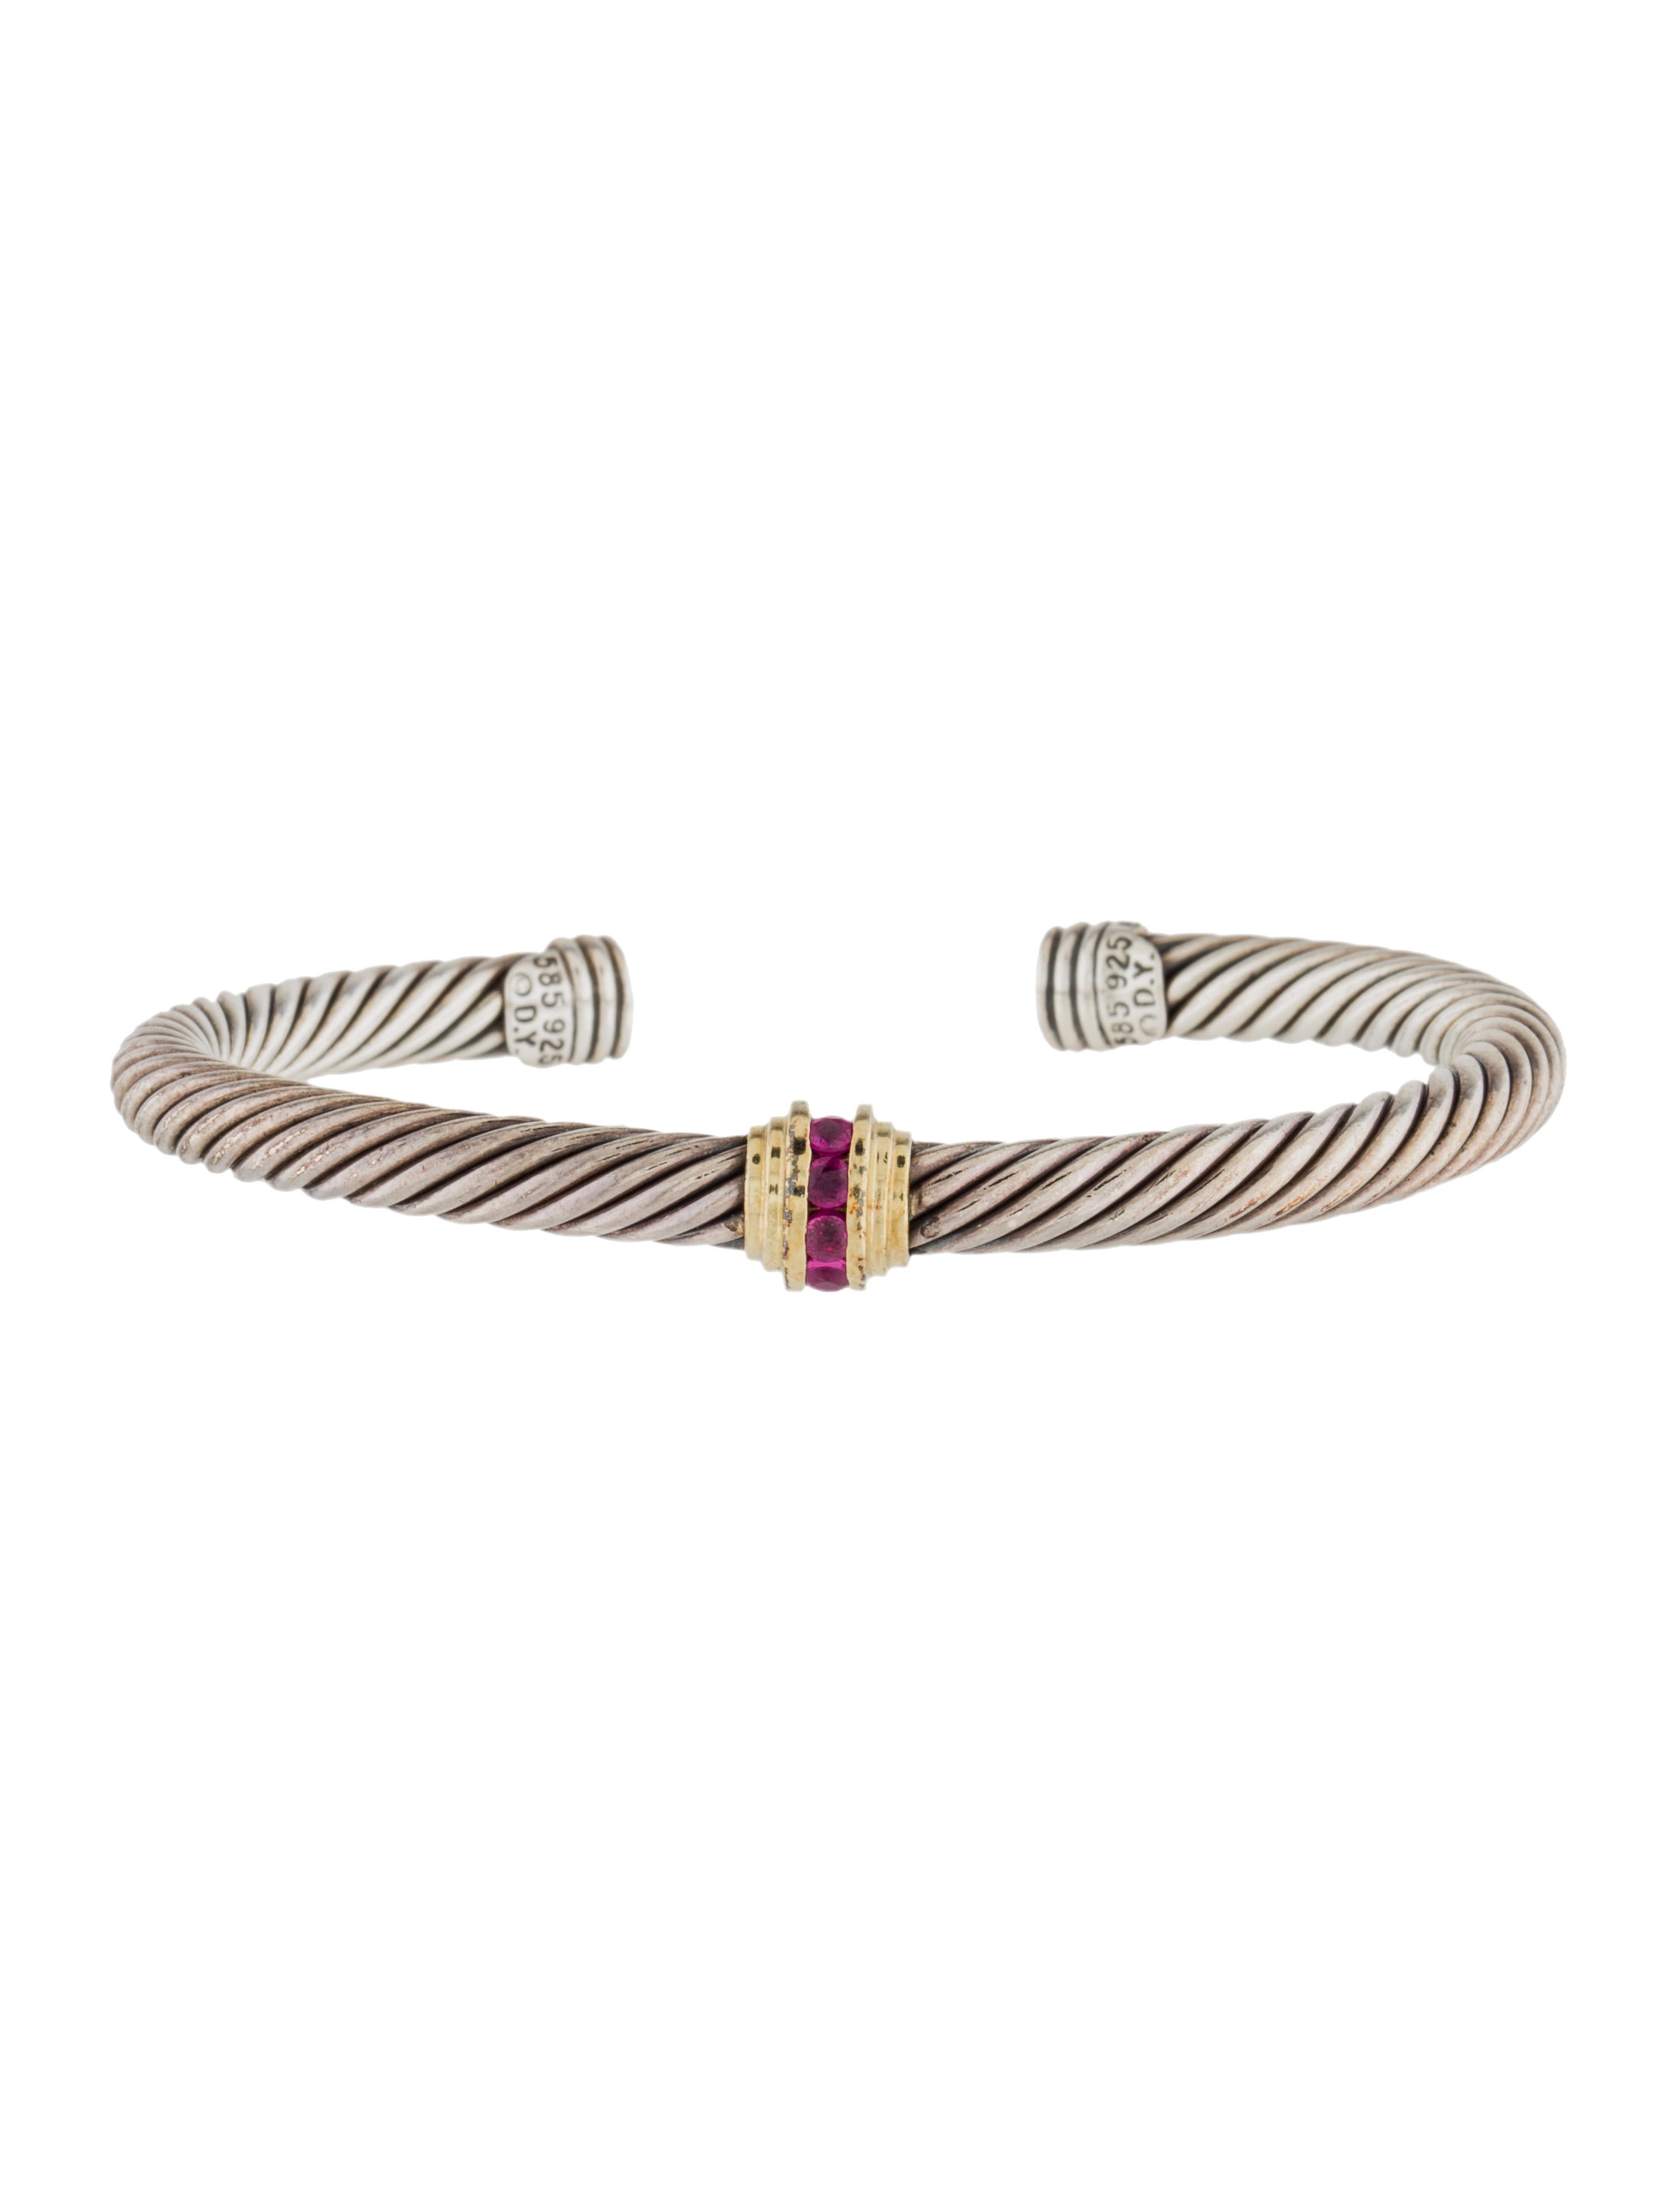 David yurman ruby cable classics cuff bracelet bracelets for David yurman inspired bracelet cable